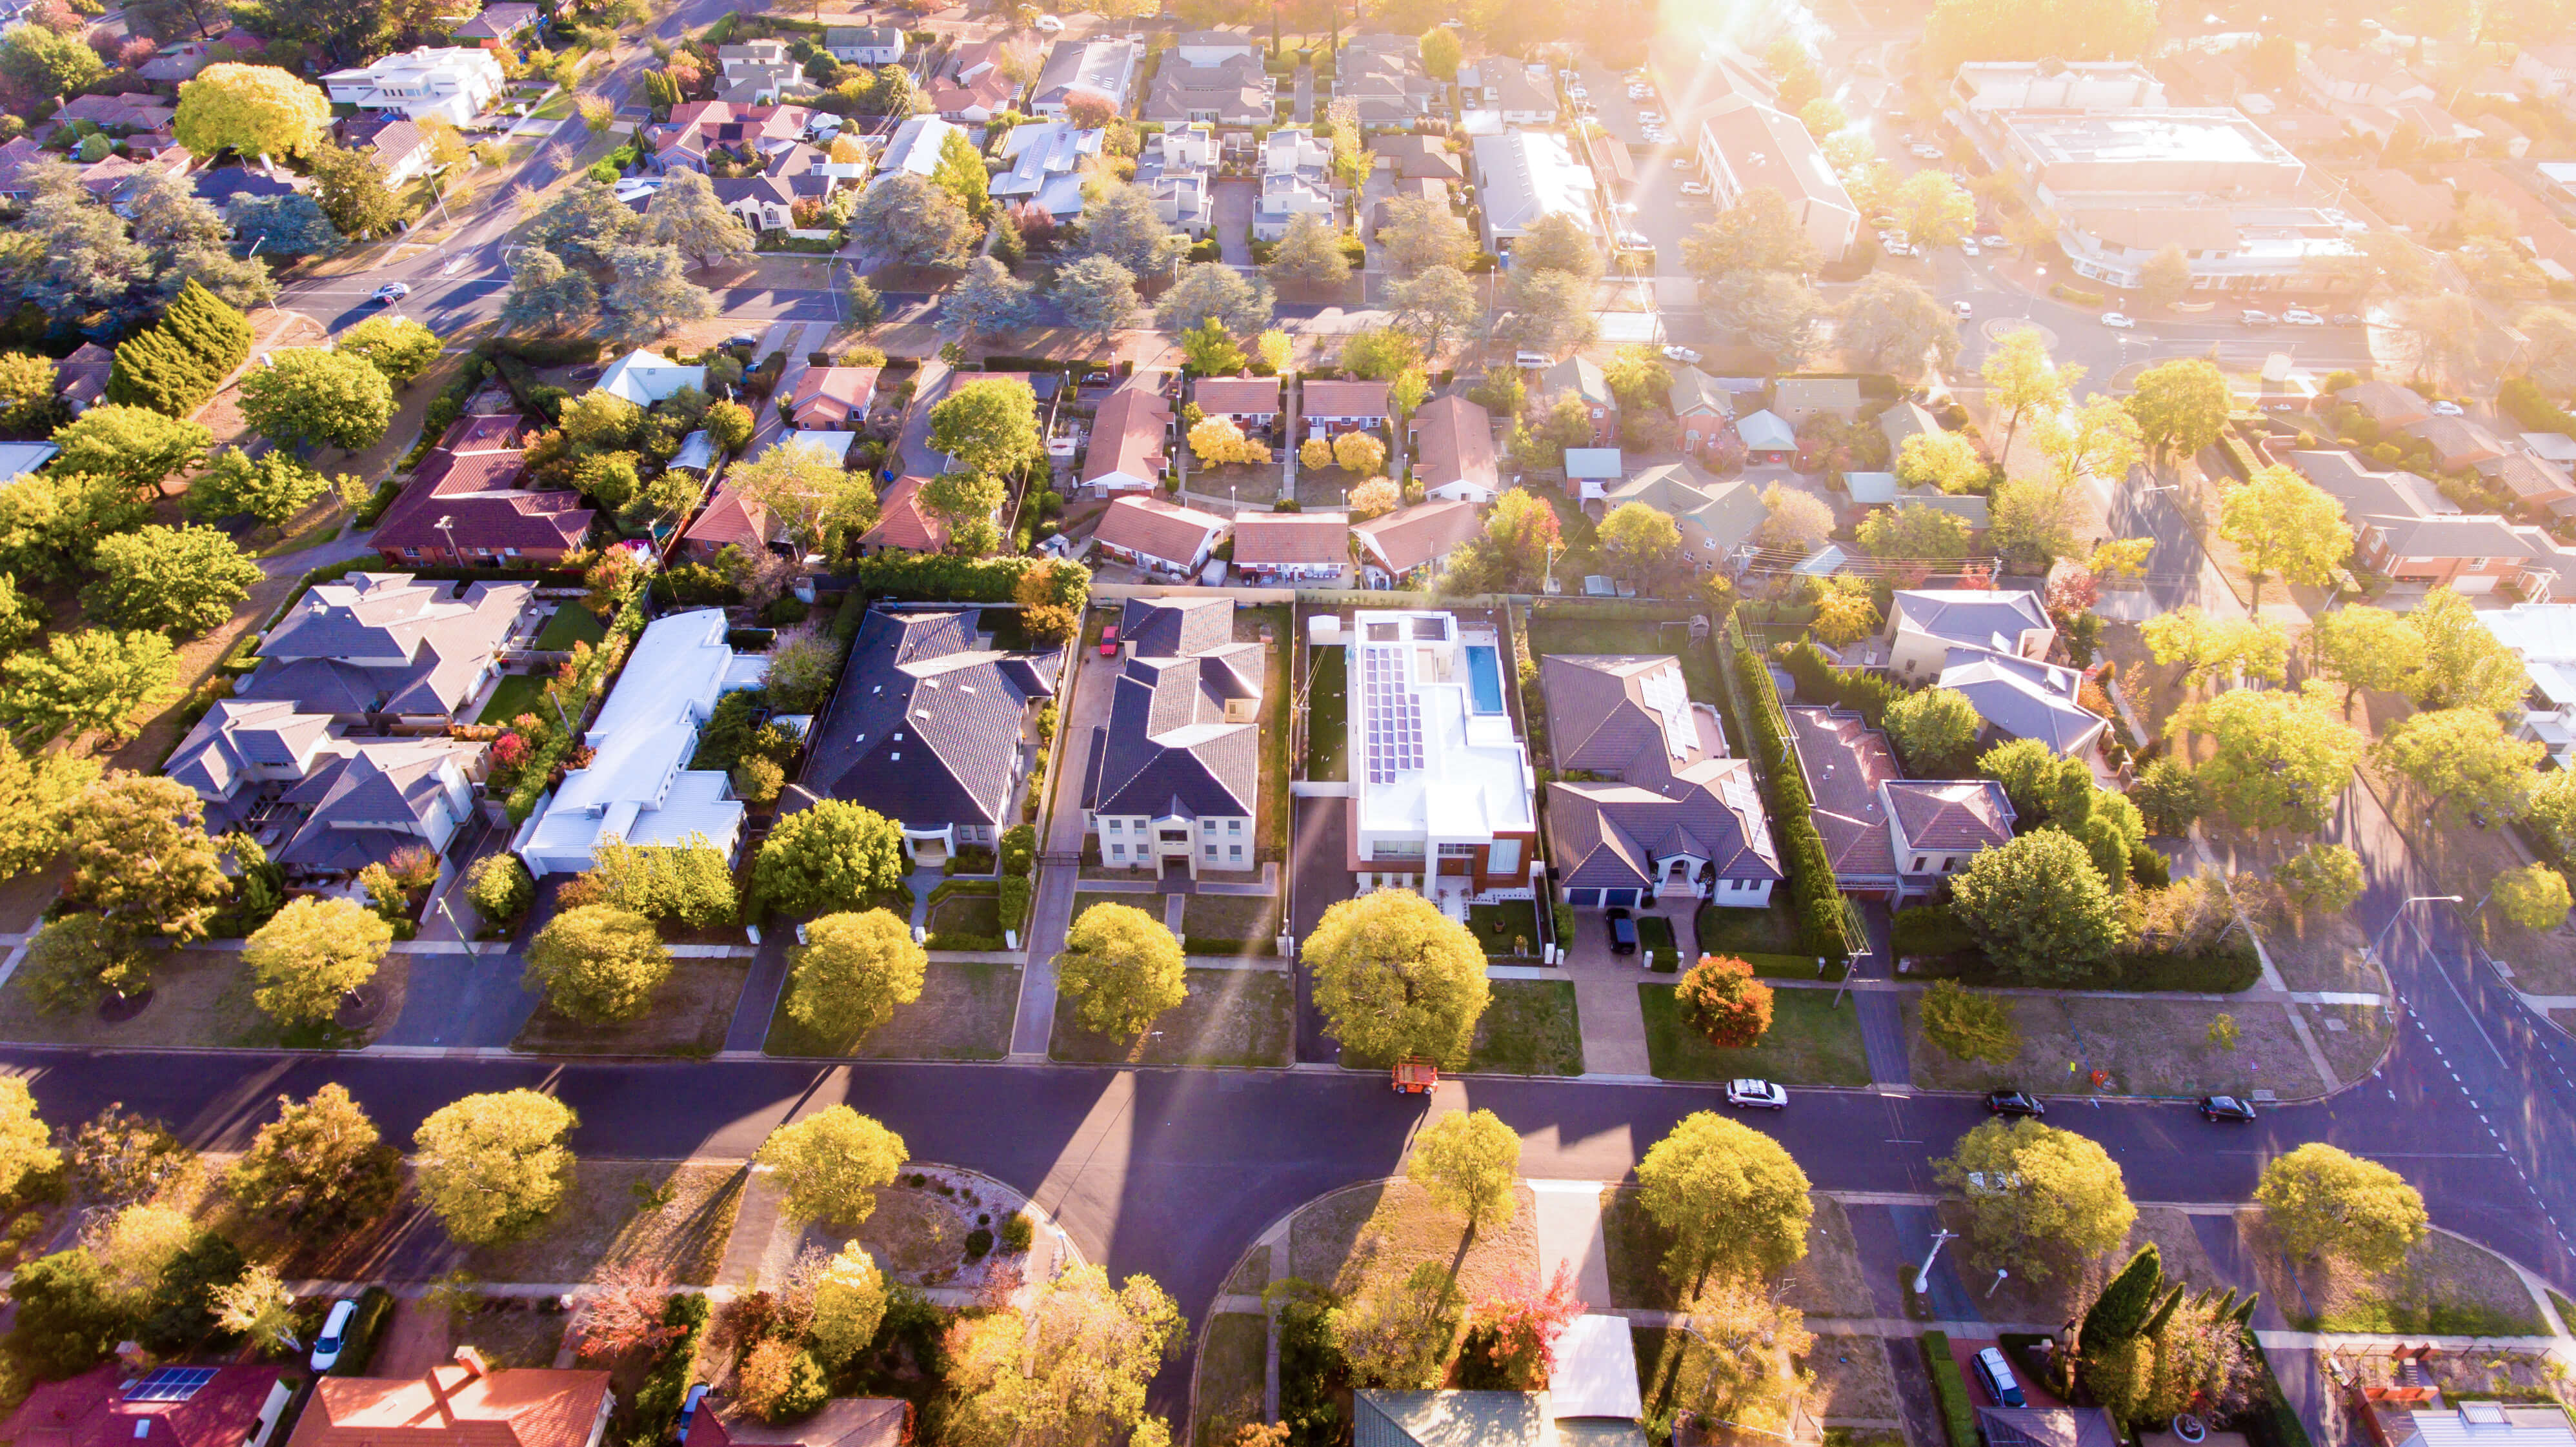 Emerging growth areas and property investment